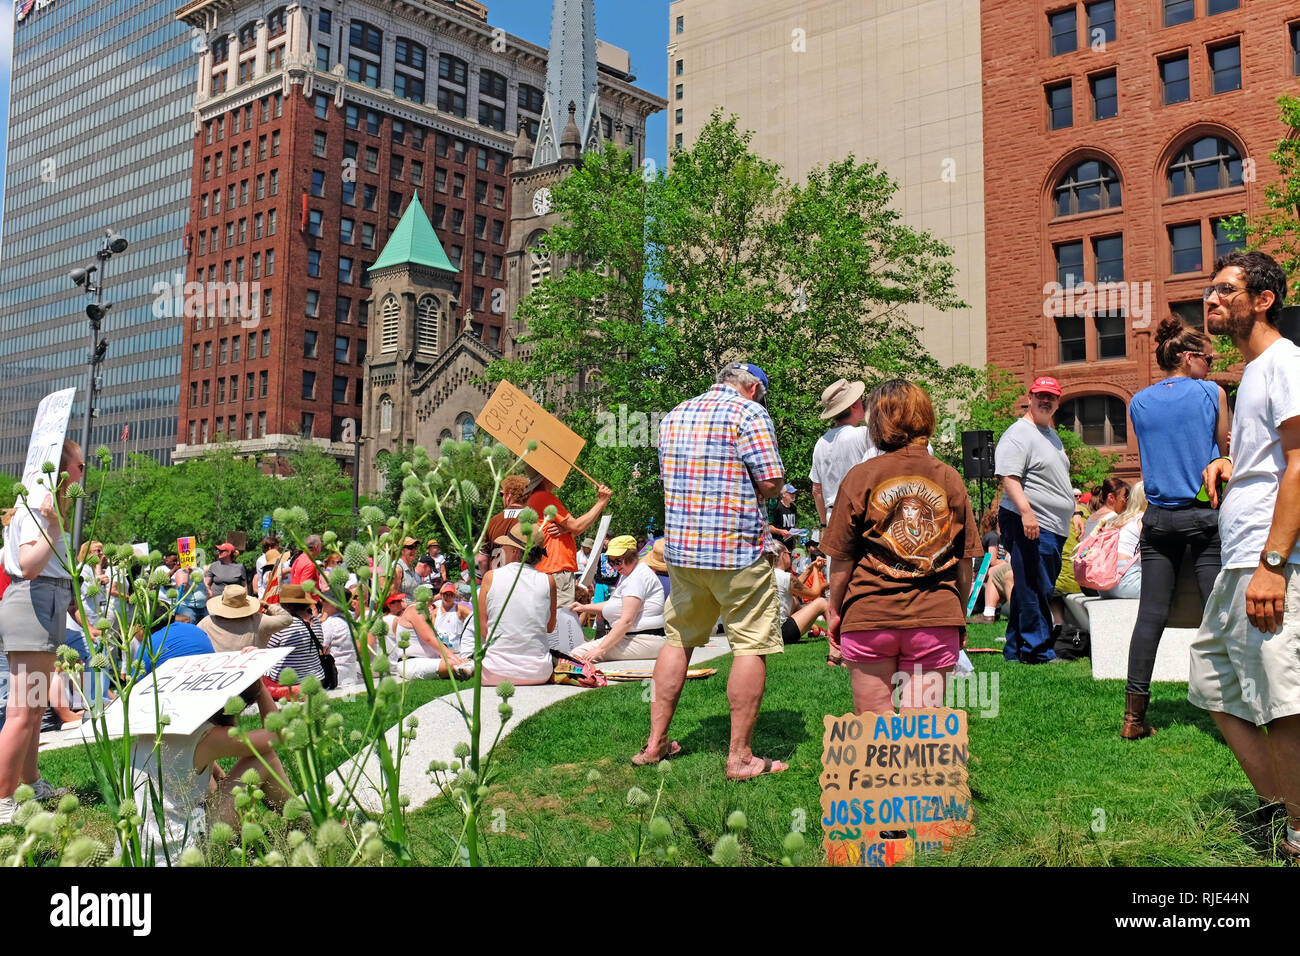 Downtown Cleveland Public Square in Cleveland, Ohio, USA filled with protesters against Trump Administration Immigration policies and actions Stock Photo